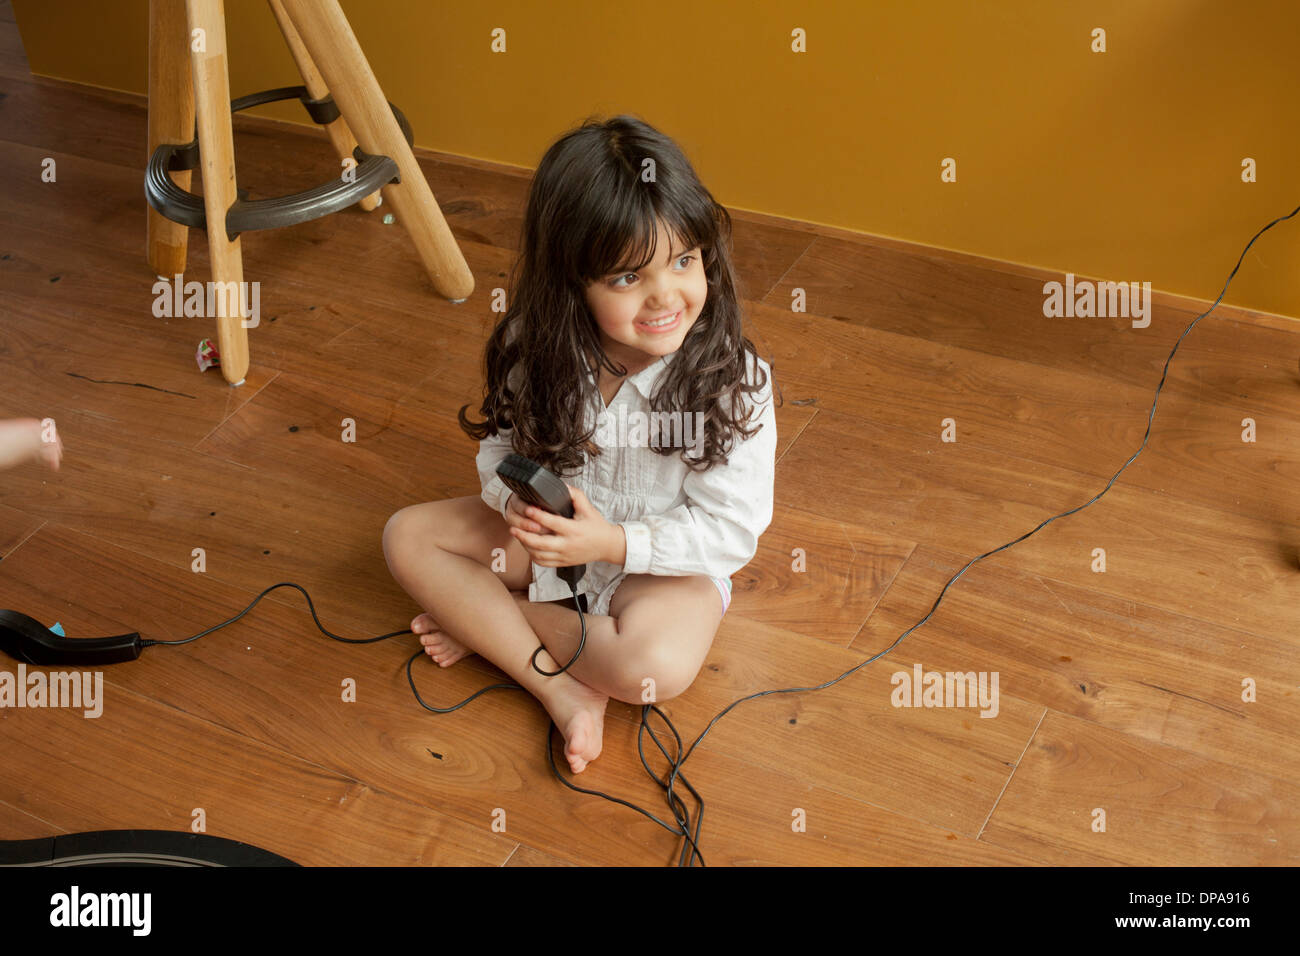 A little girl playing by herself - Stock Image